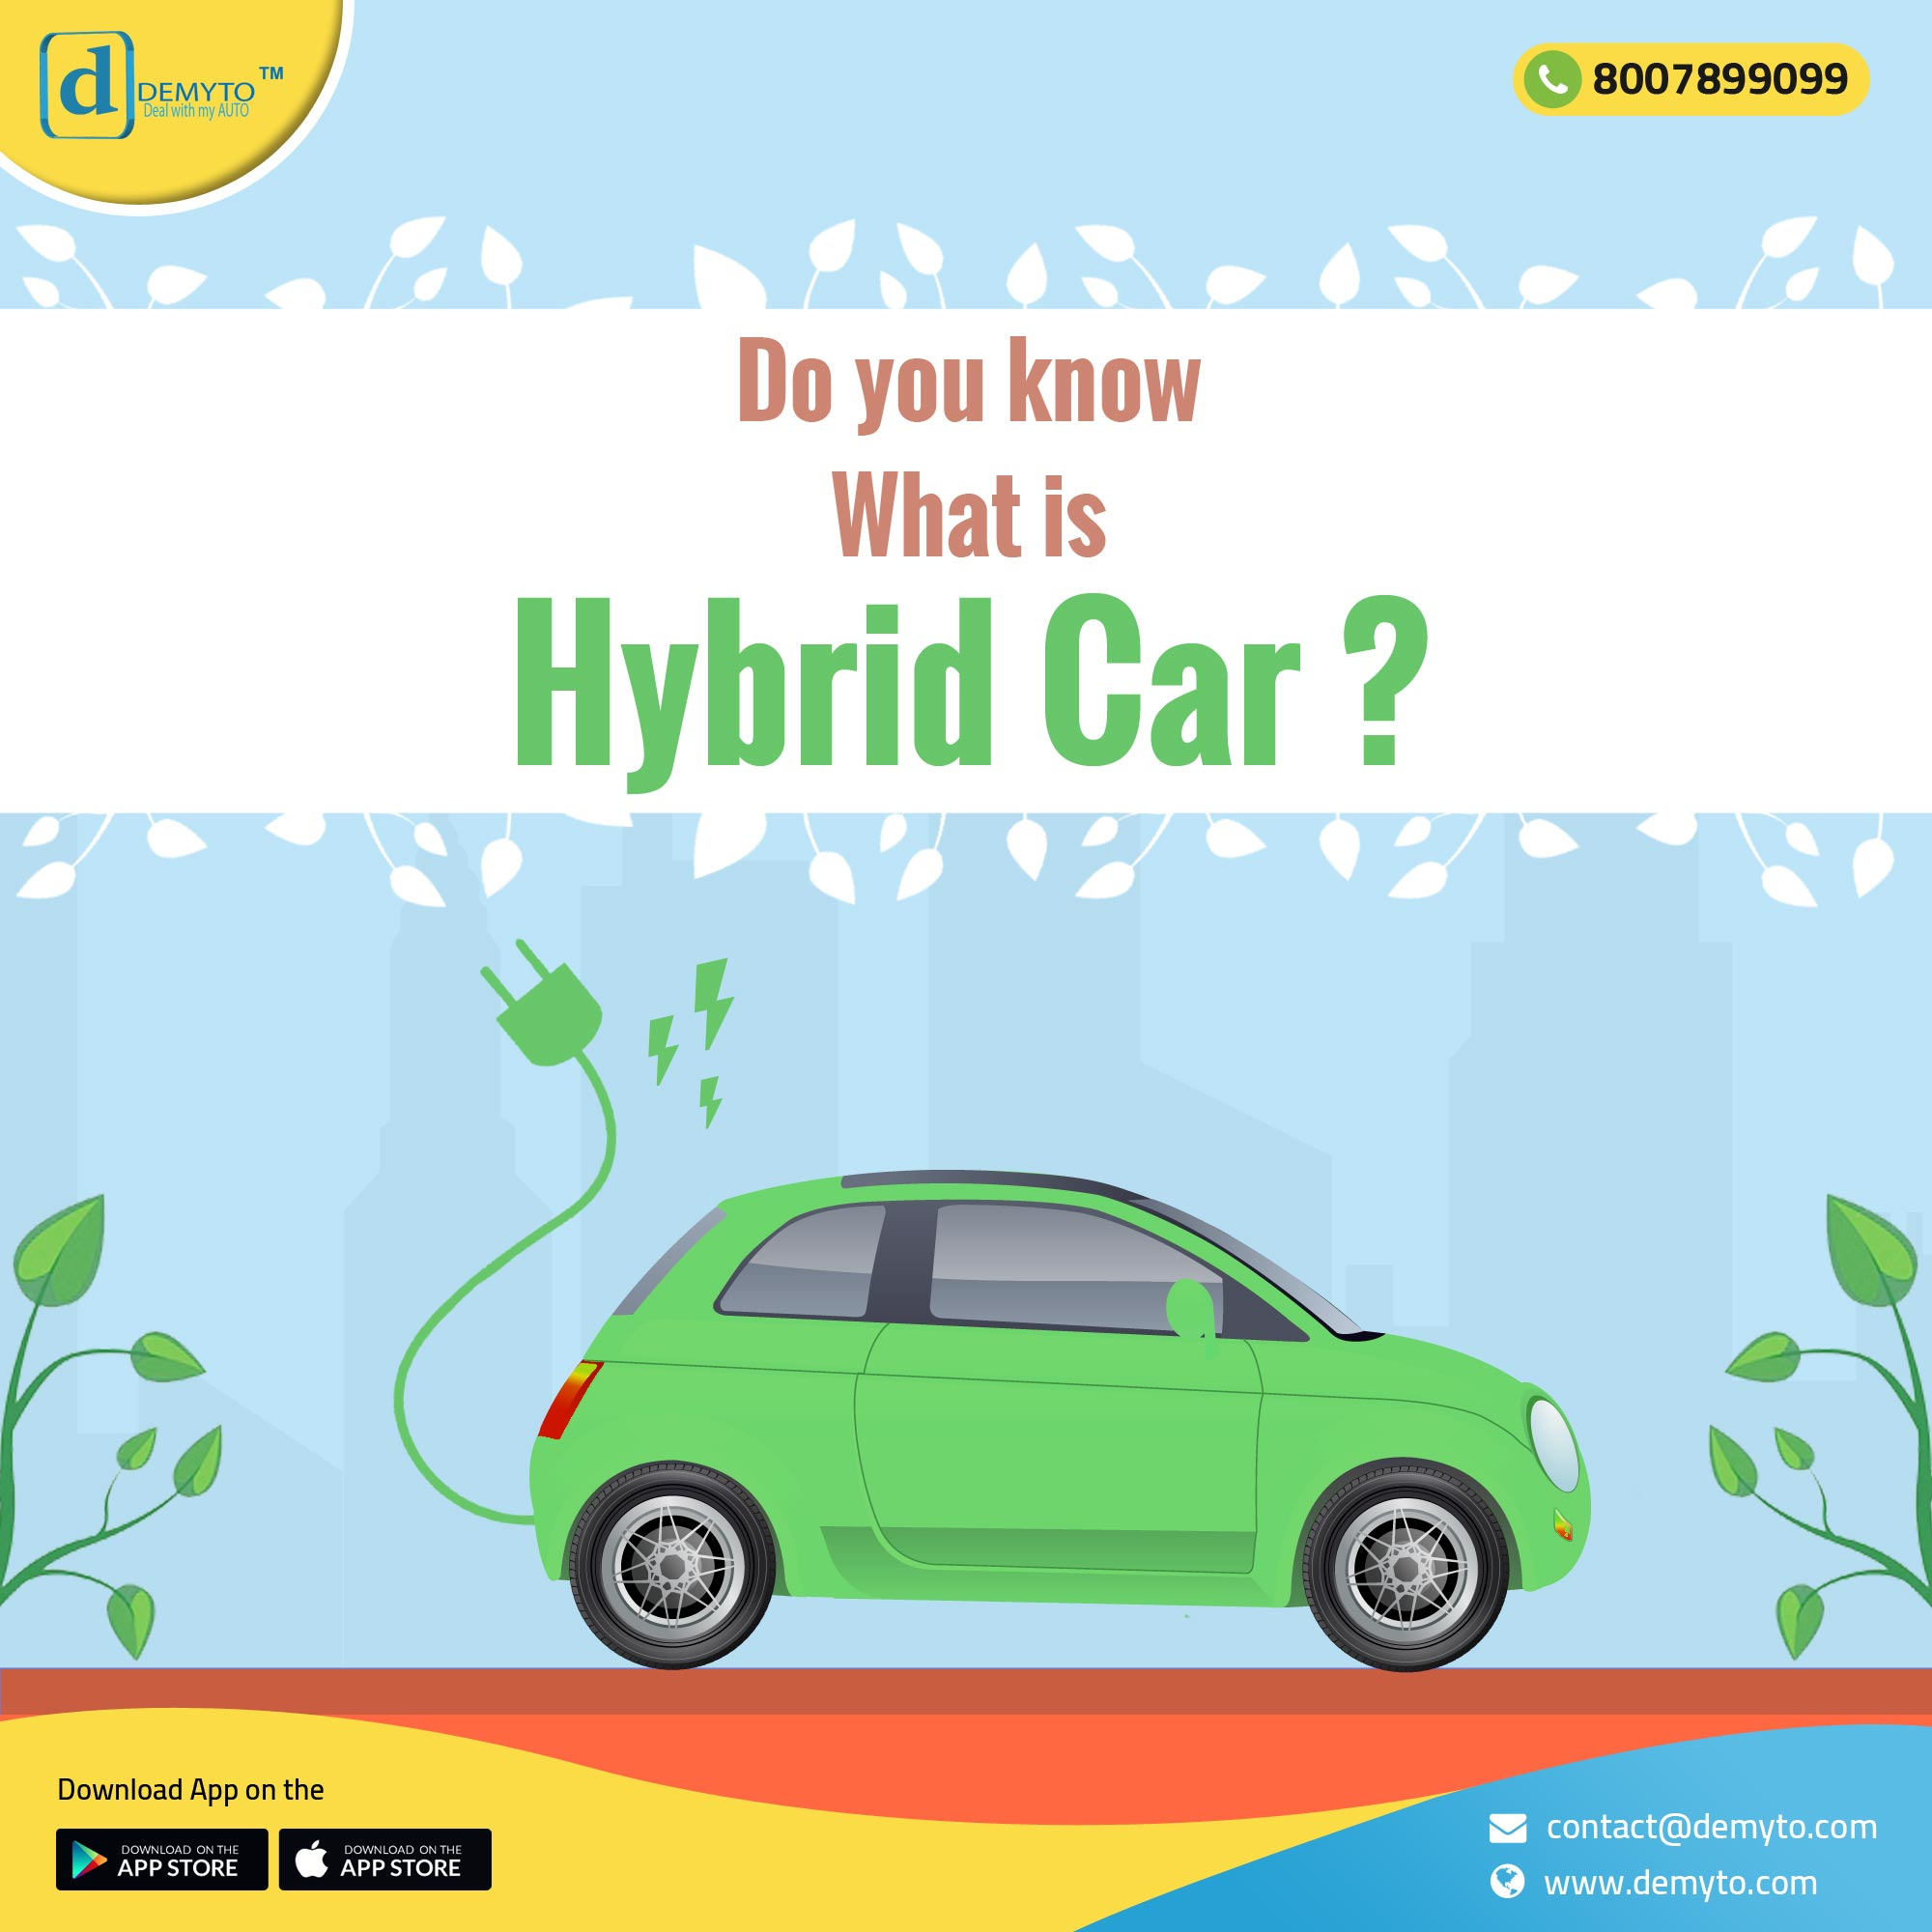 Do you know what hybrid car is?